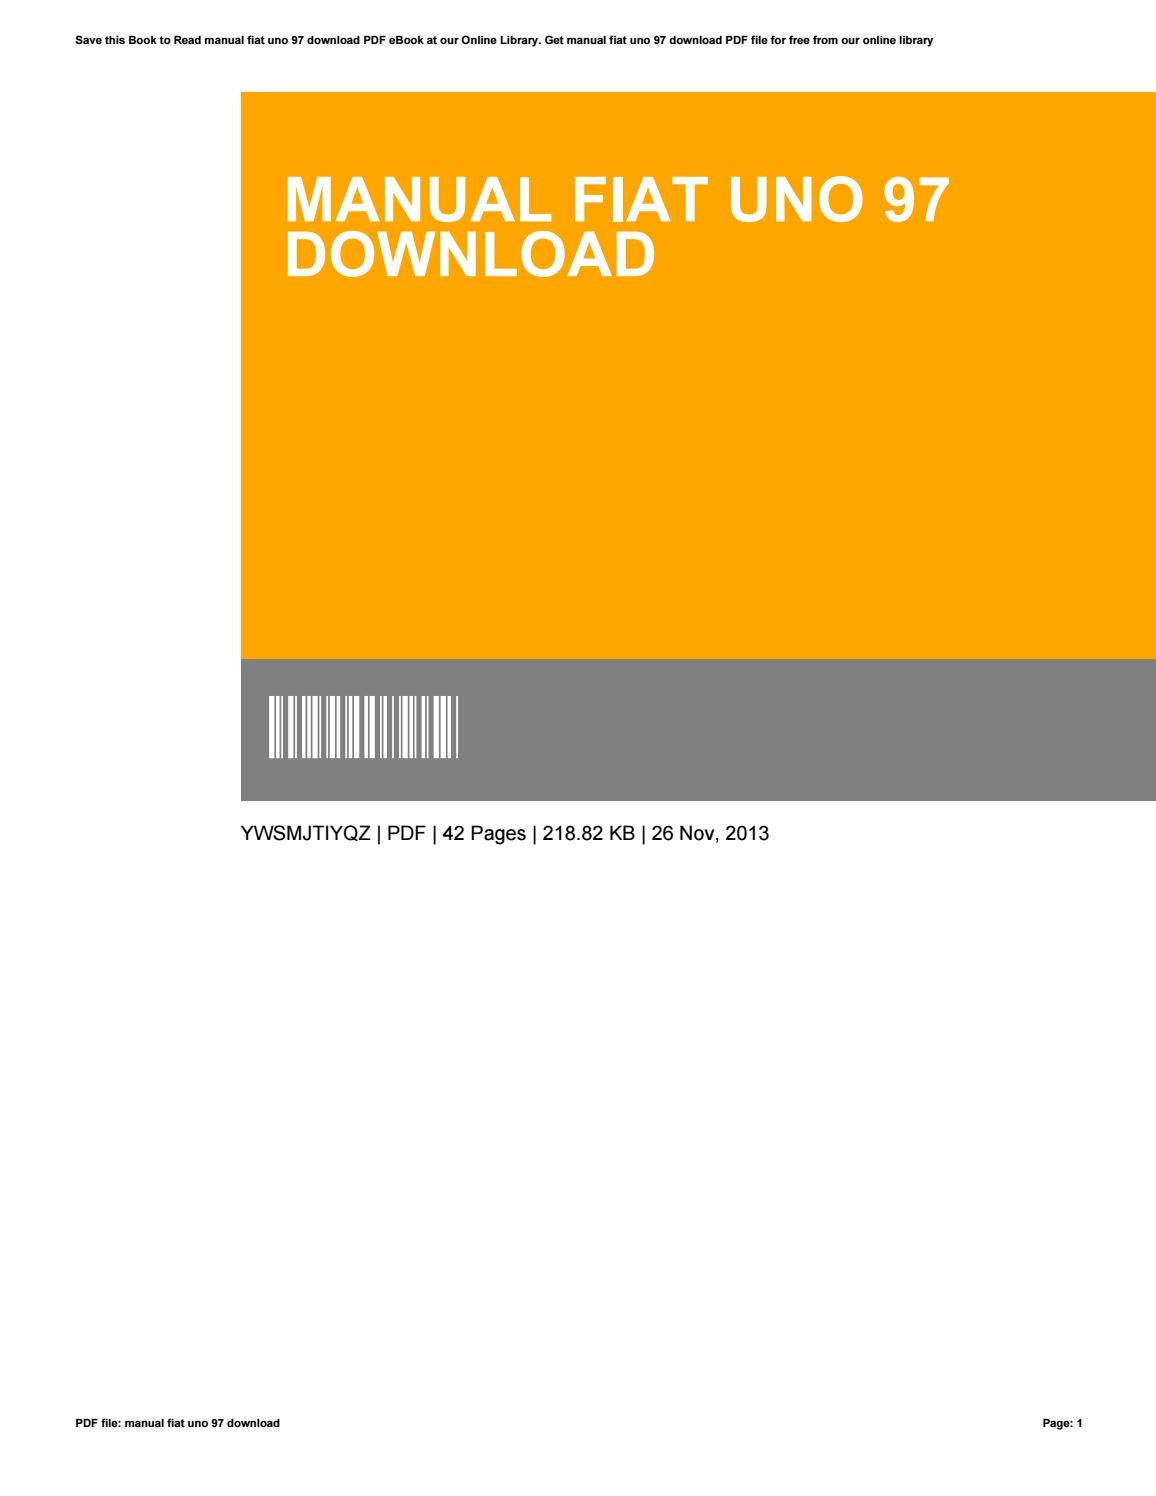 hight resolution of fiat uno manual free download